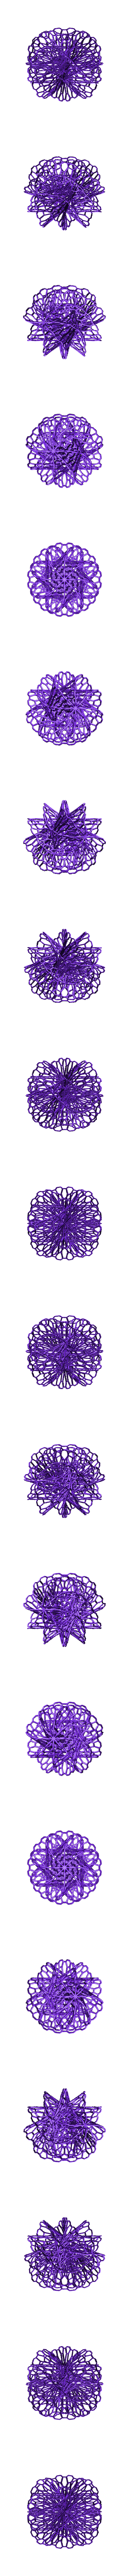 f_shape1_flower1_3_thicker.stl Download free STL file Mathematical Art: Flower Ball (Necklace) • 3D print model, Kay